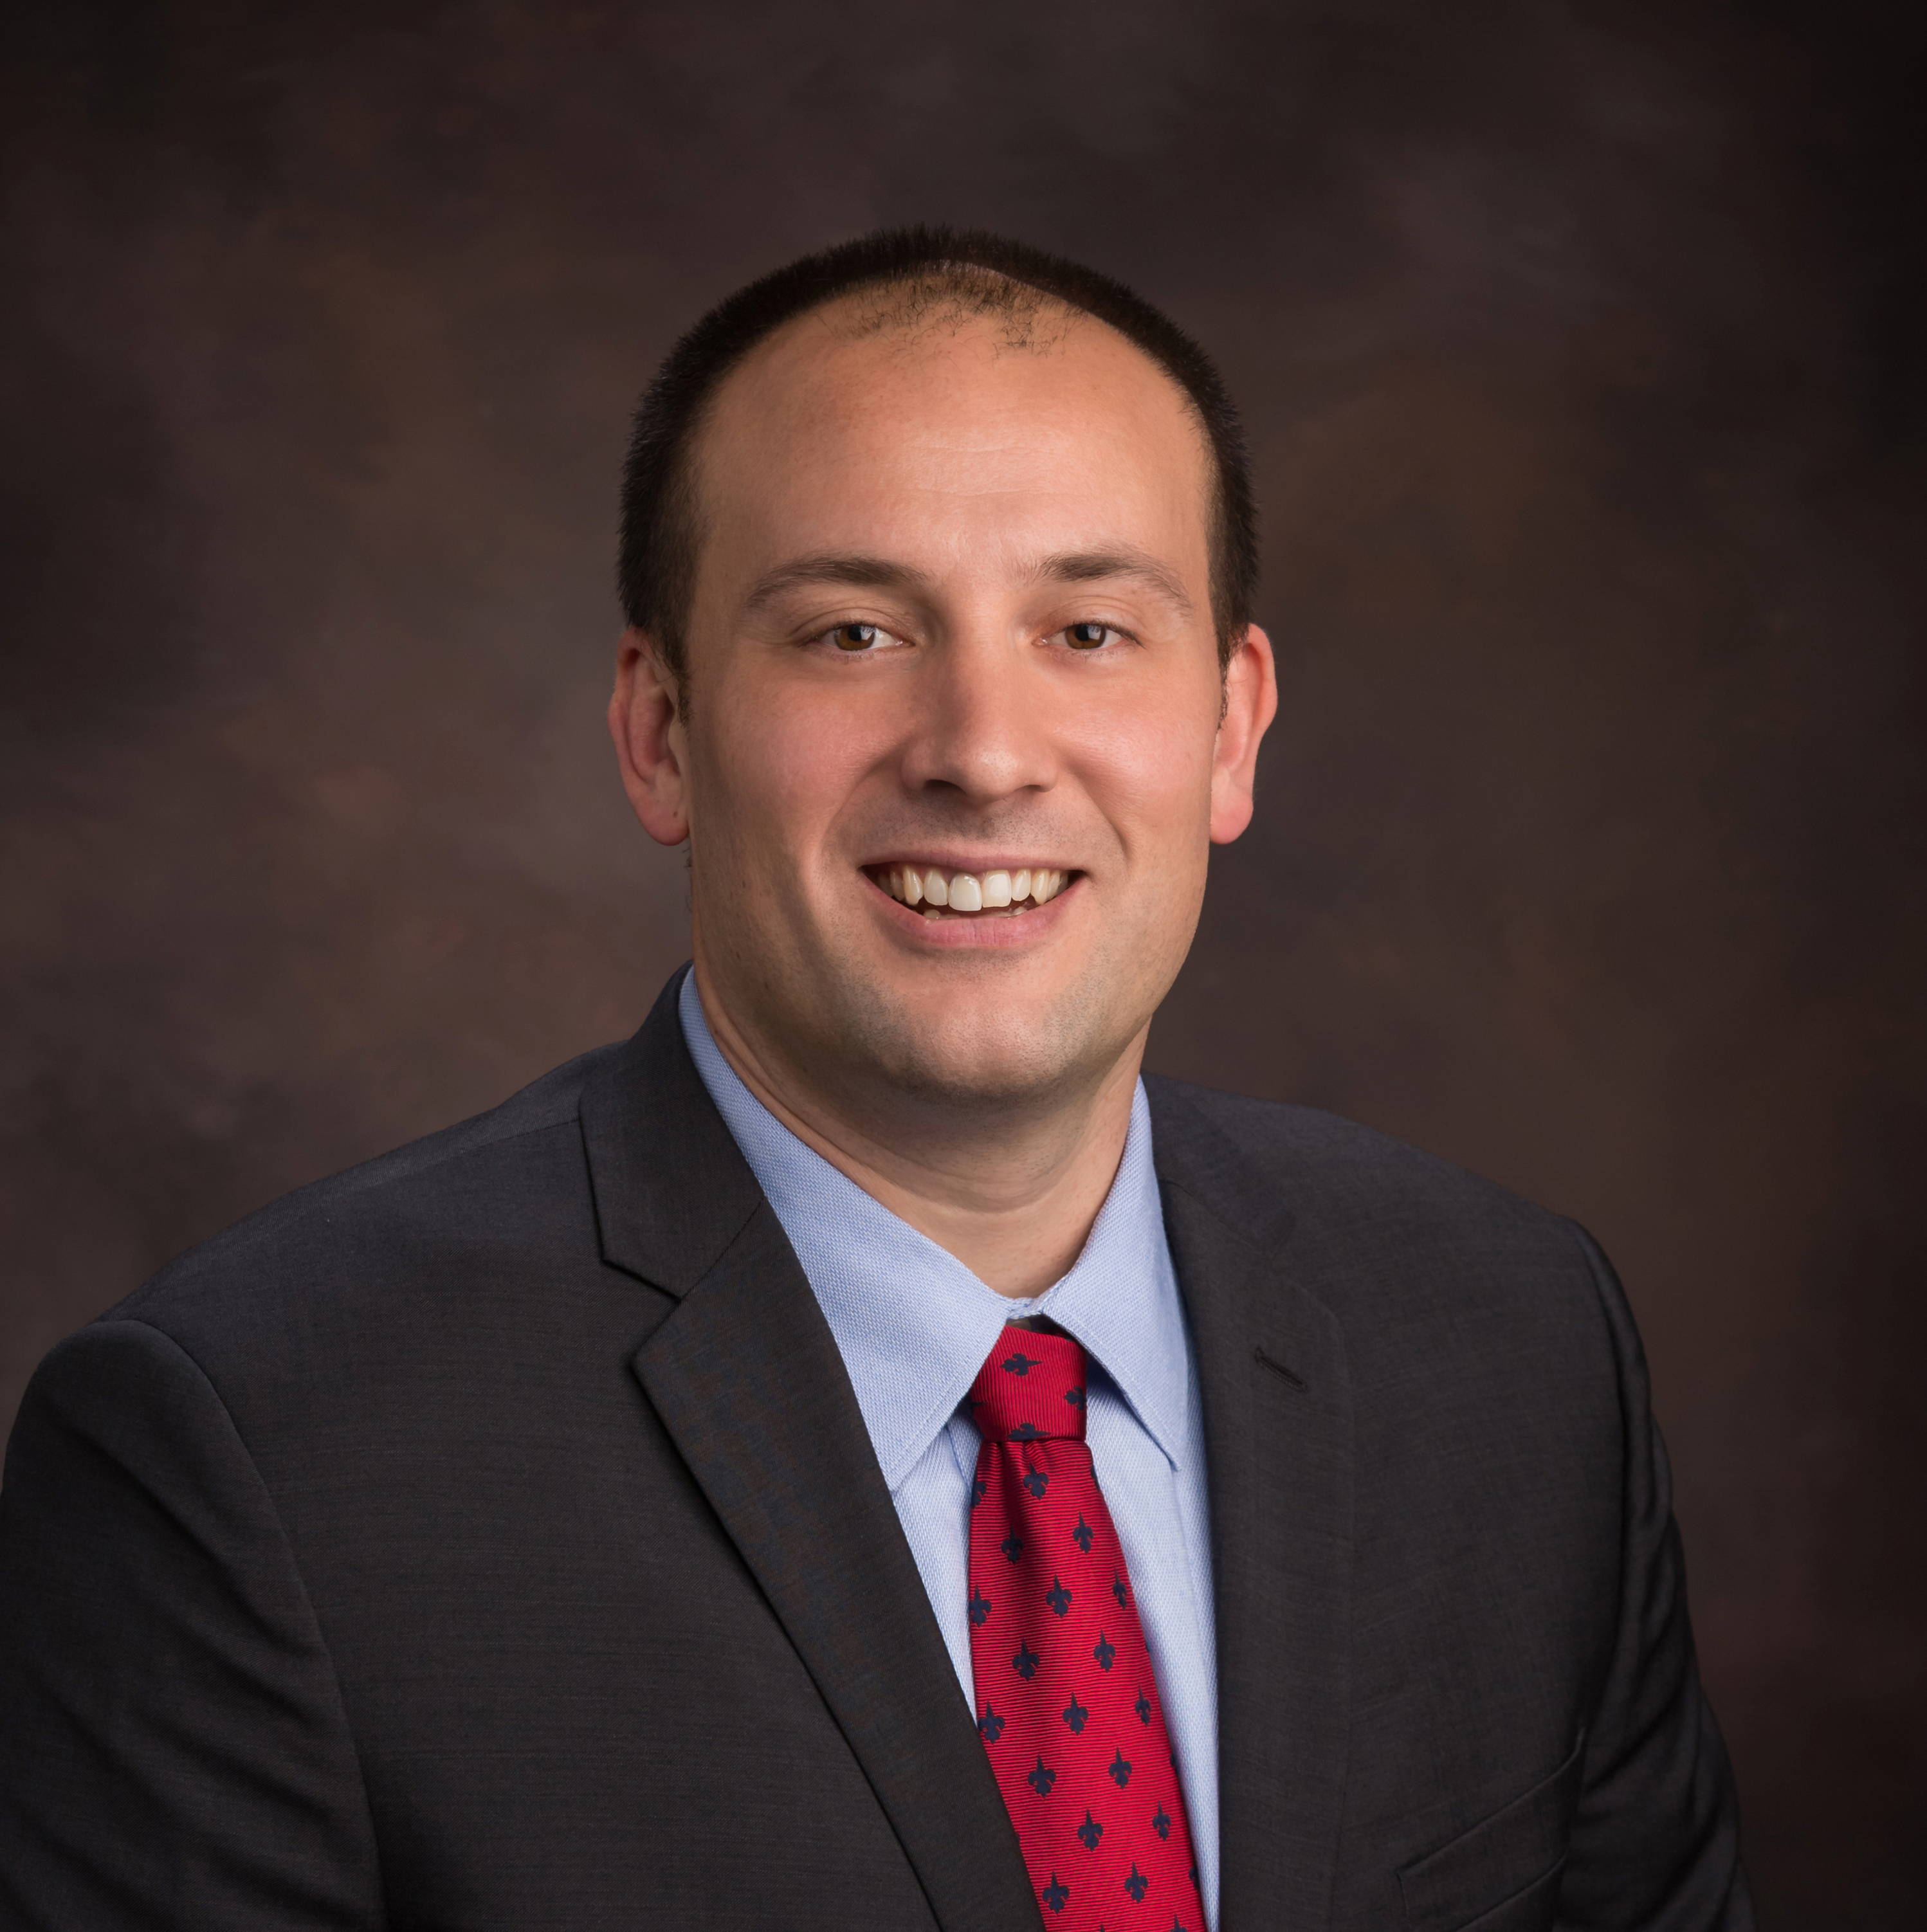 Dr. David Homan, MD at Cardiovascular Institute of the South in Opelousas